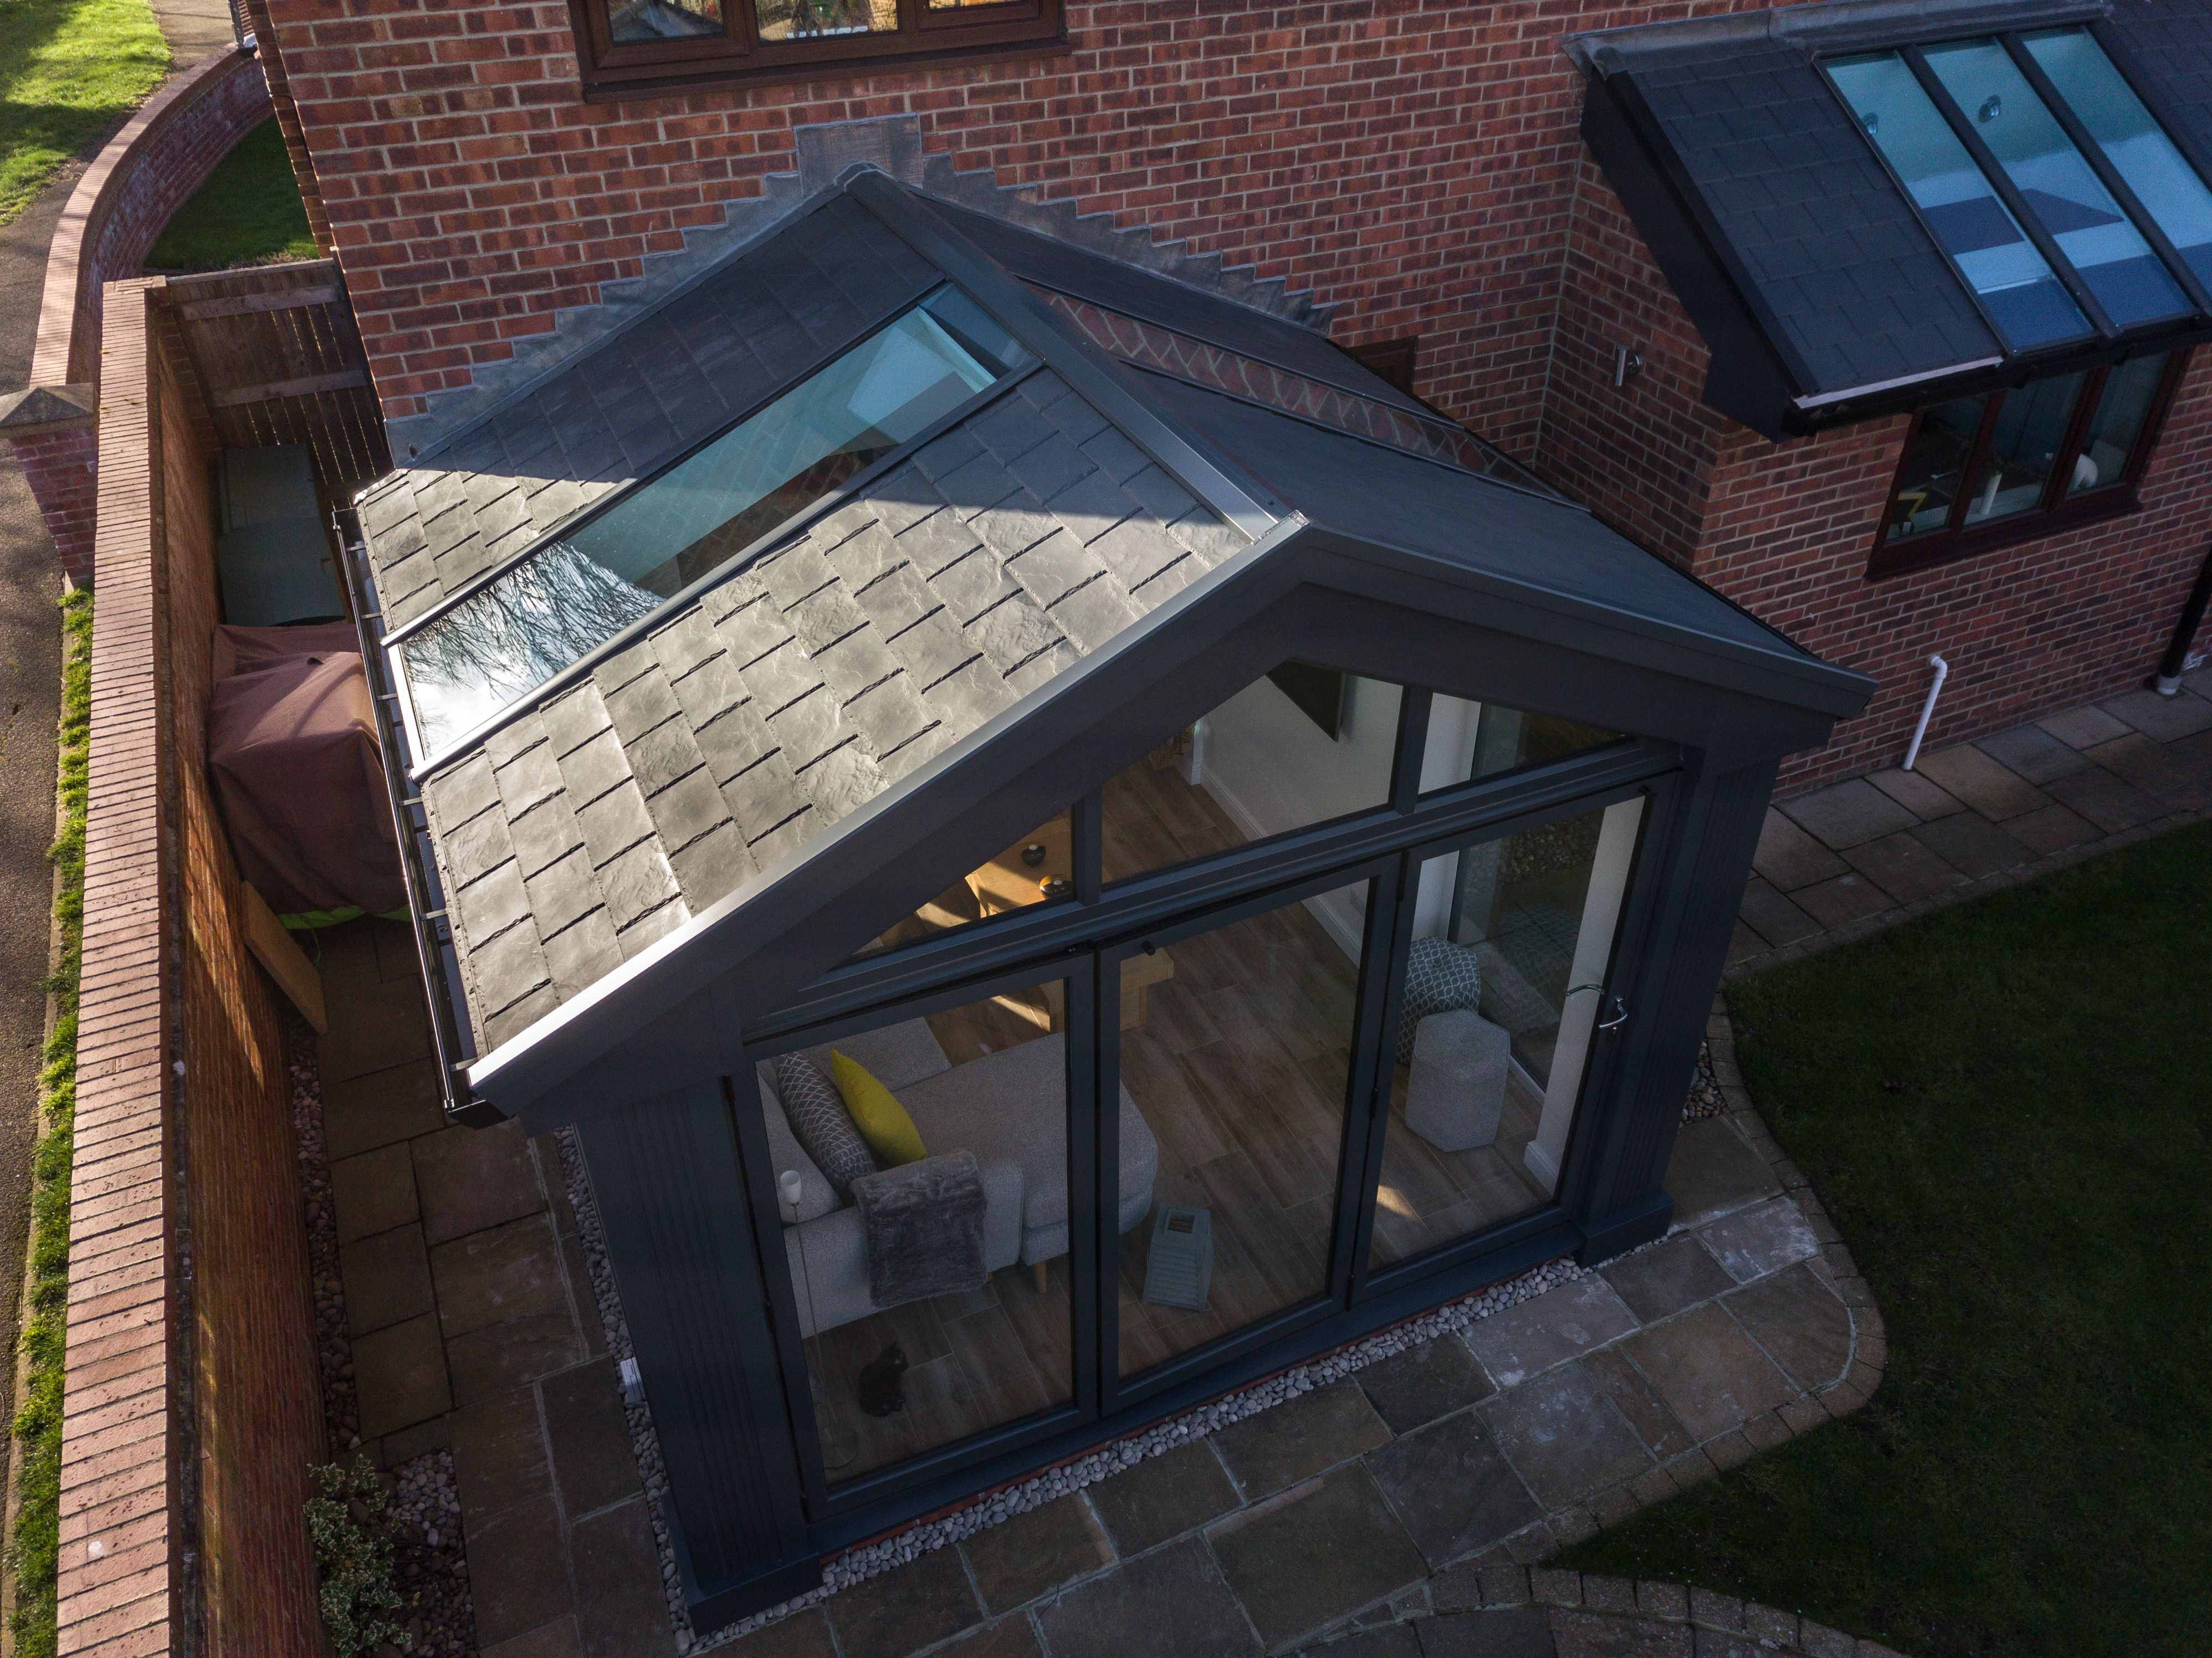 Tiled Conservatory Roof Ultraroof Conservatory Uk Conservatory Roof Tiled Conservatory Roof Garden Room Extensions